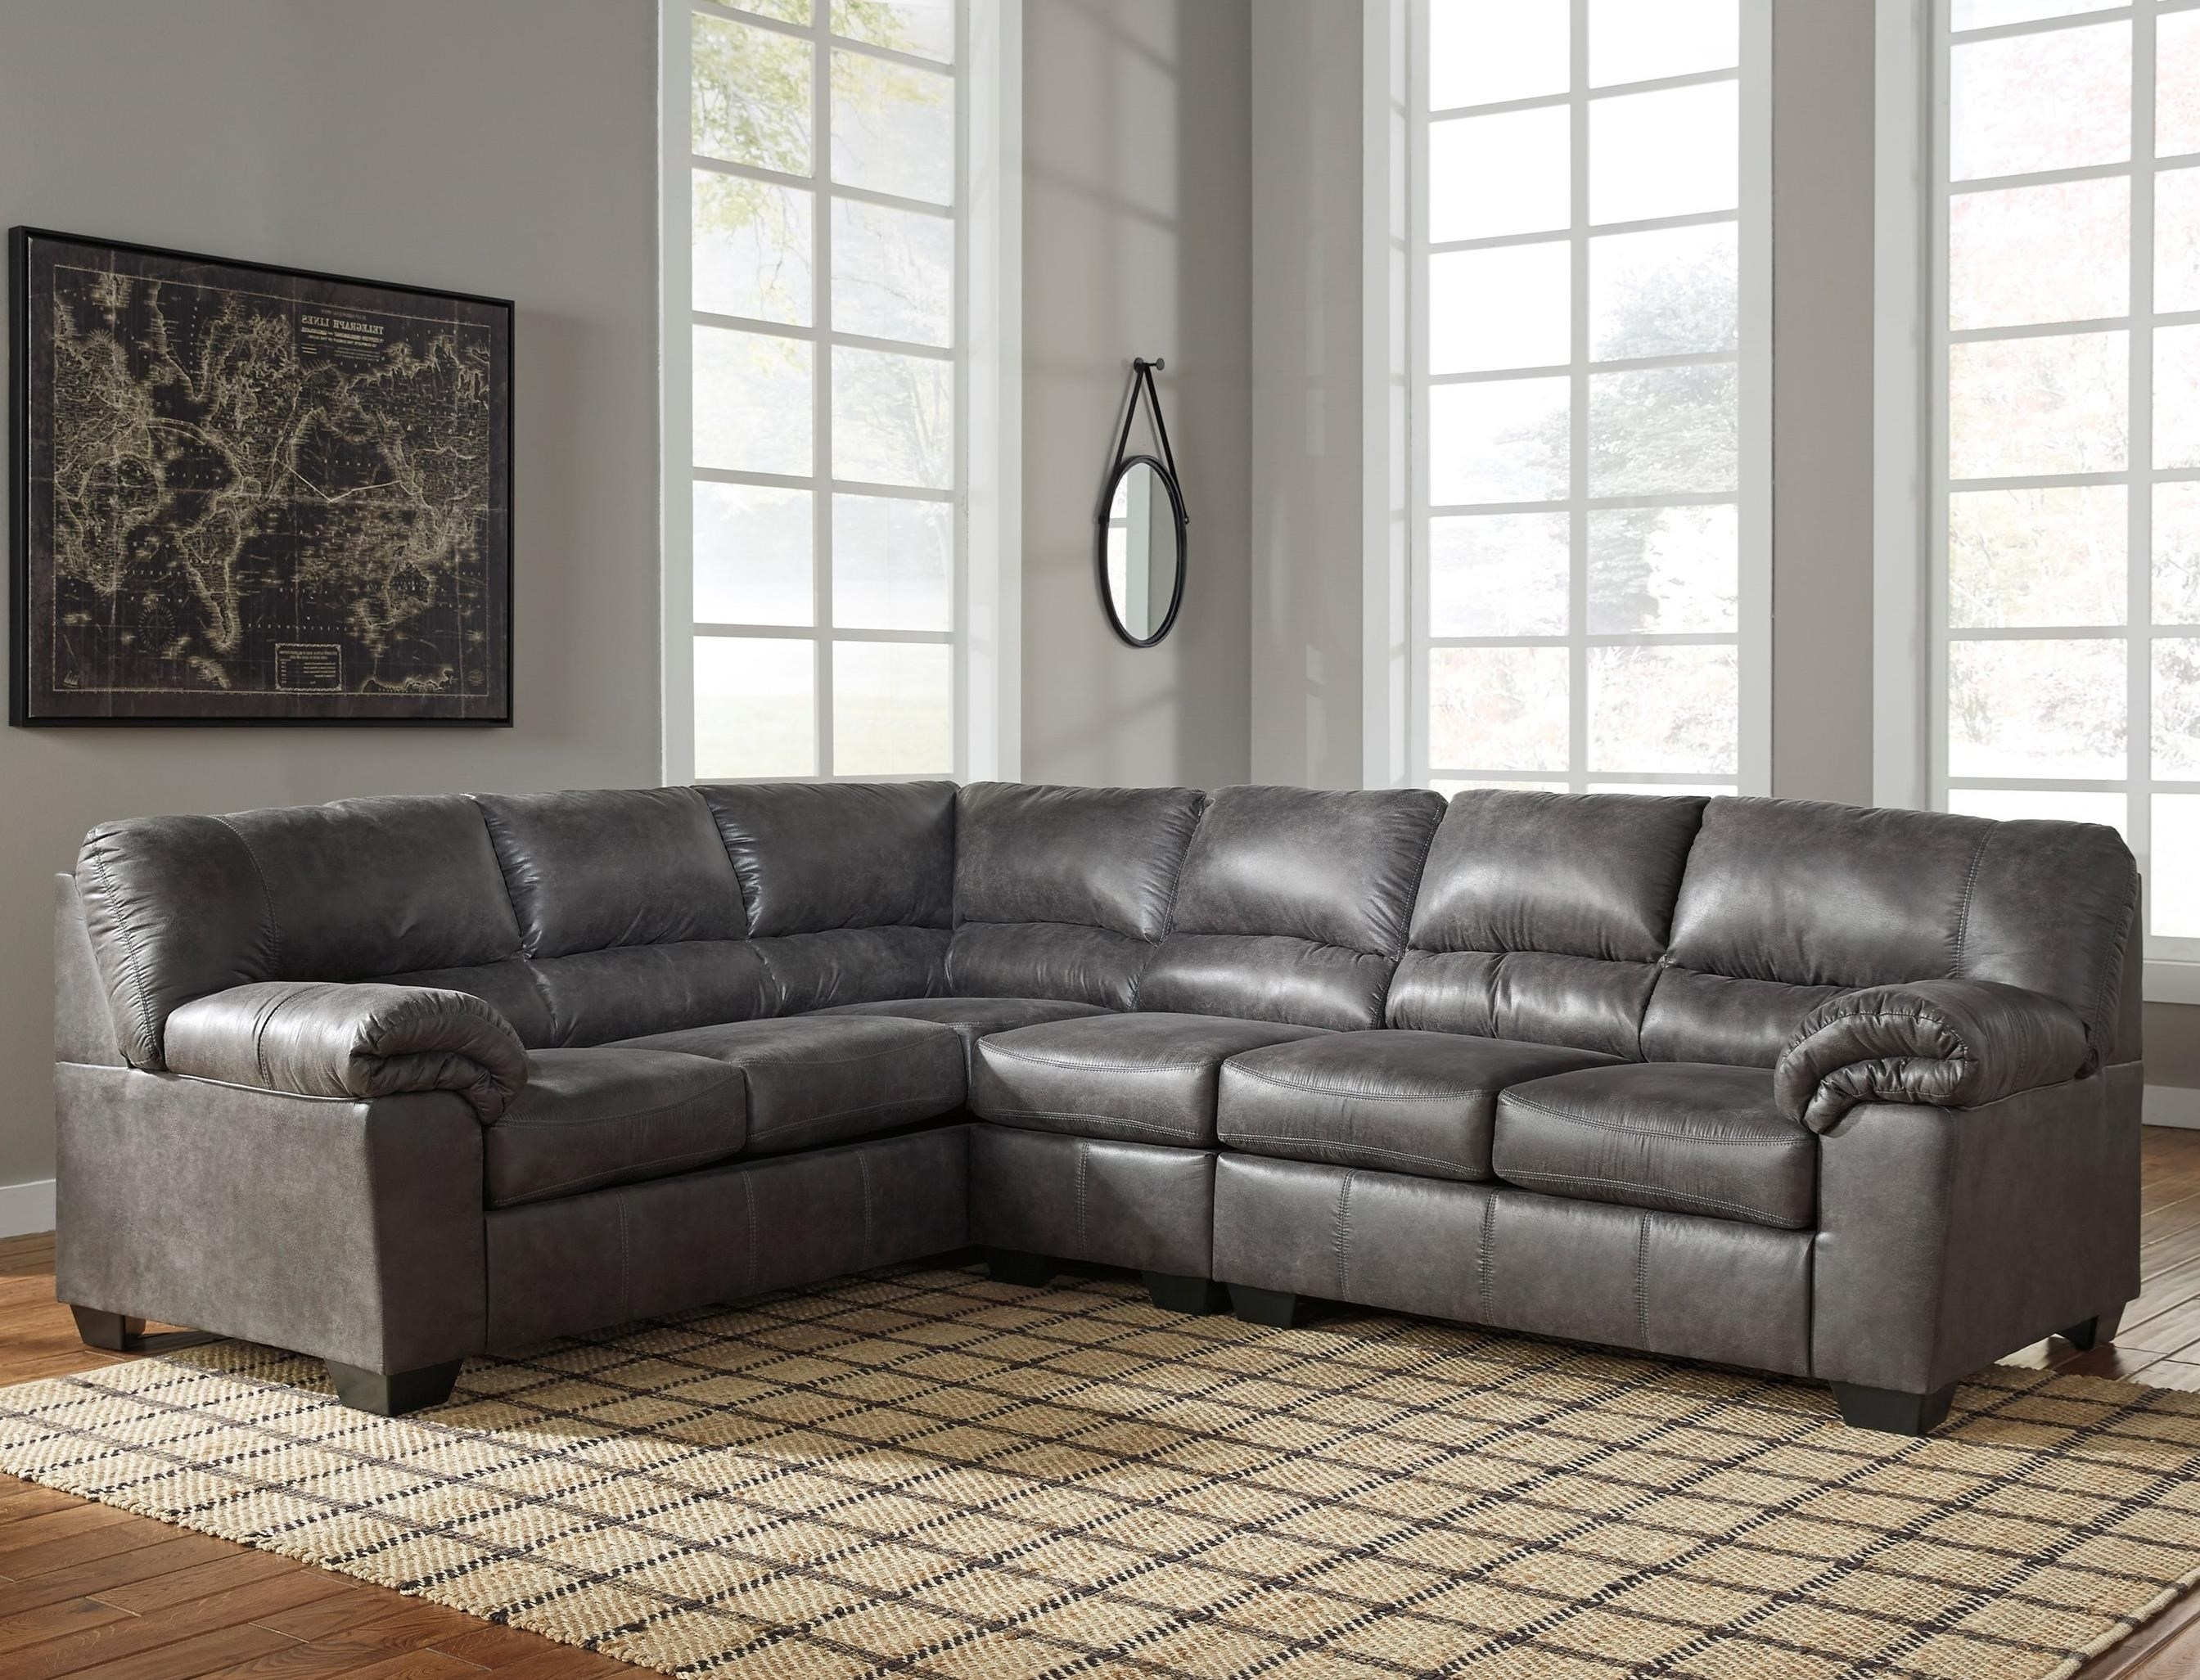 Signature Designashley Bladen 3 Piece Sectional | Northeast Pertaining To Sierra Down 3 Piece Sectionals With Laf Chaise (View 27 of 30)